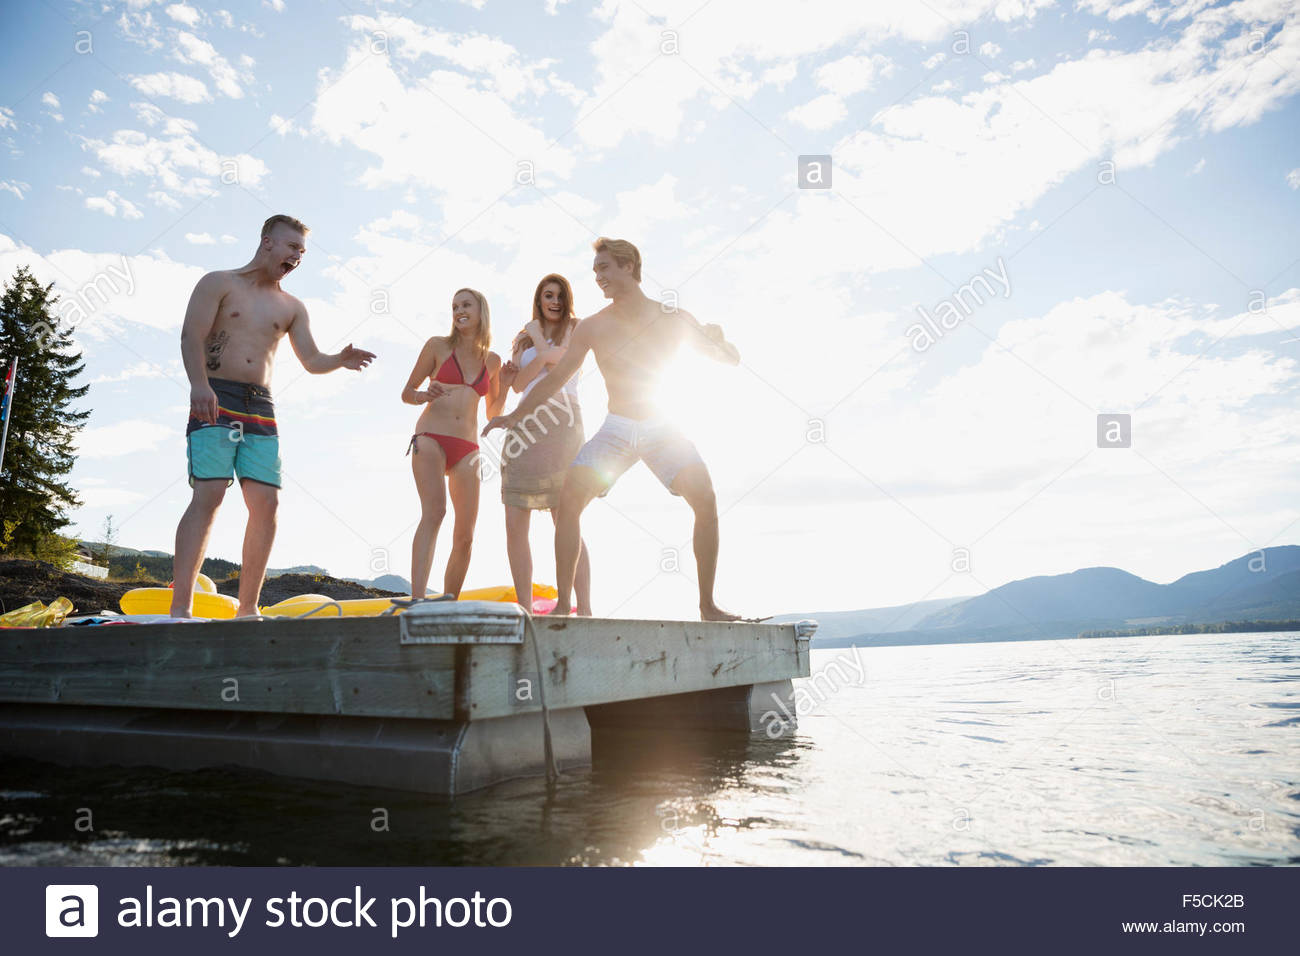 Playful young friends on sunny lake dock - Stock Image